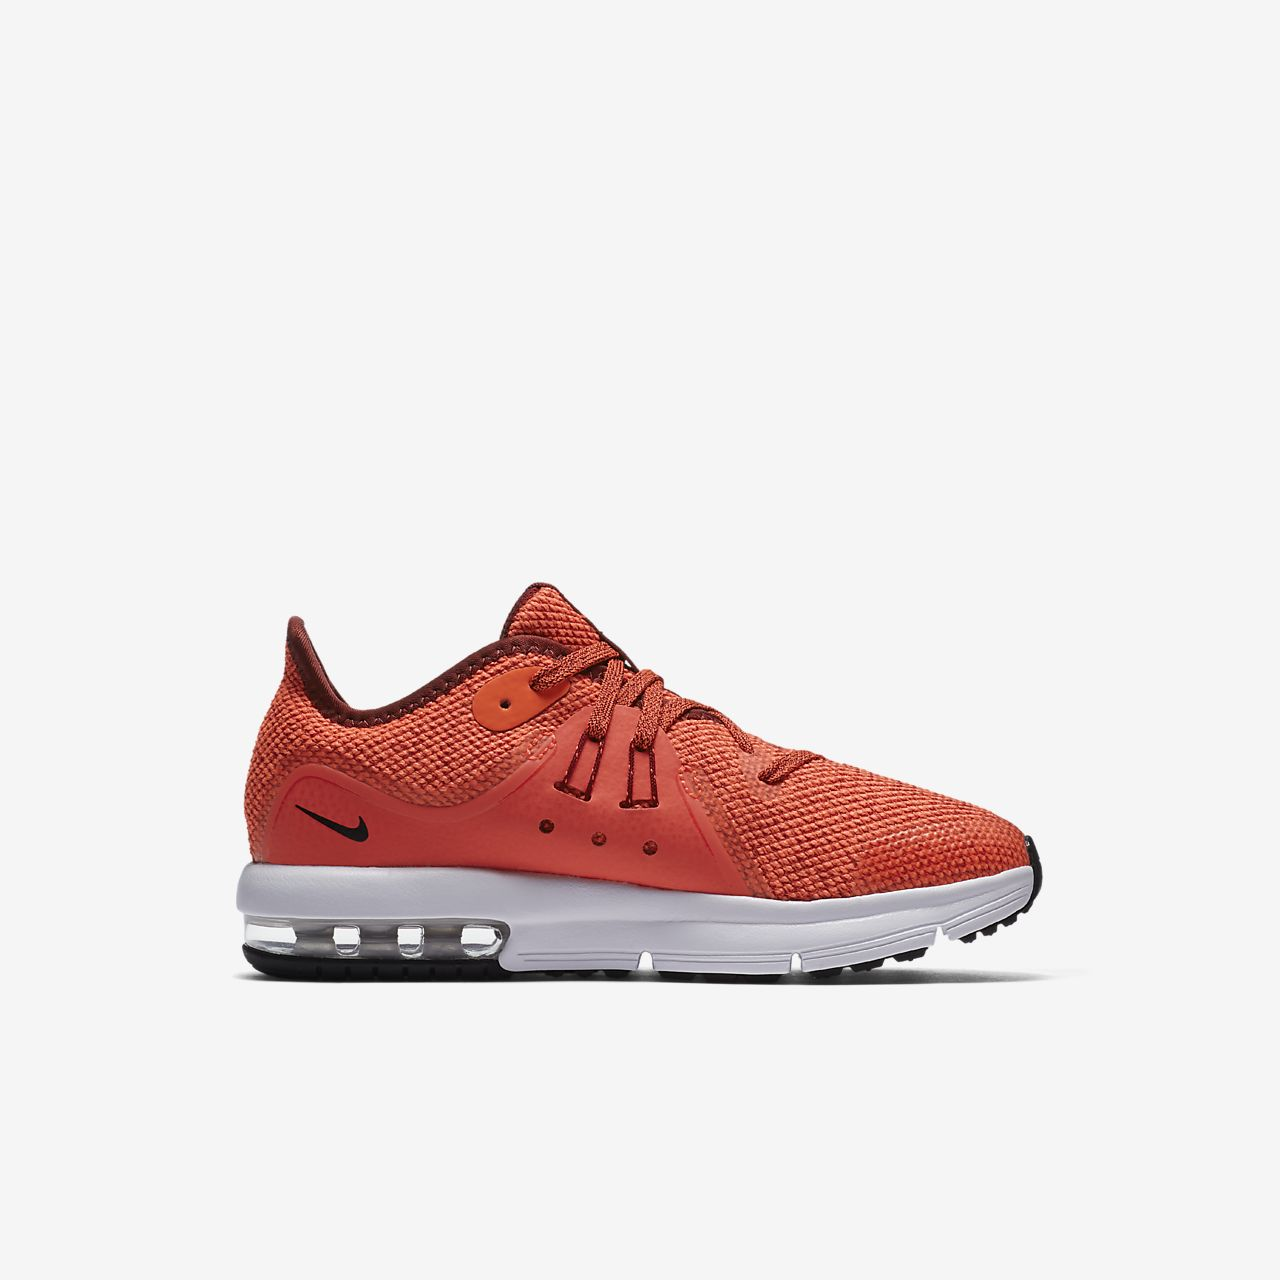 ... Nike Air Max Sequent 3 Little Kids' Shoe